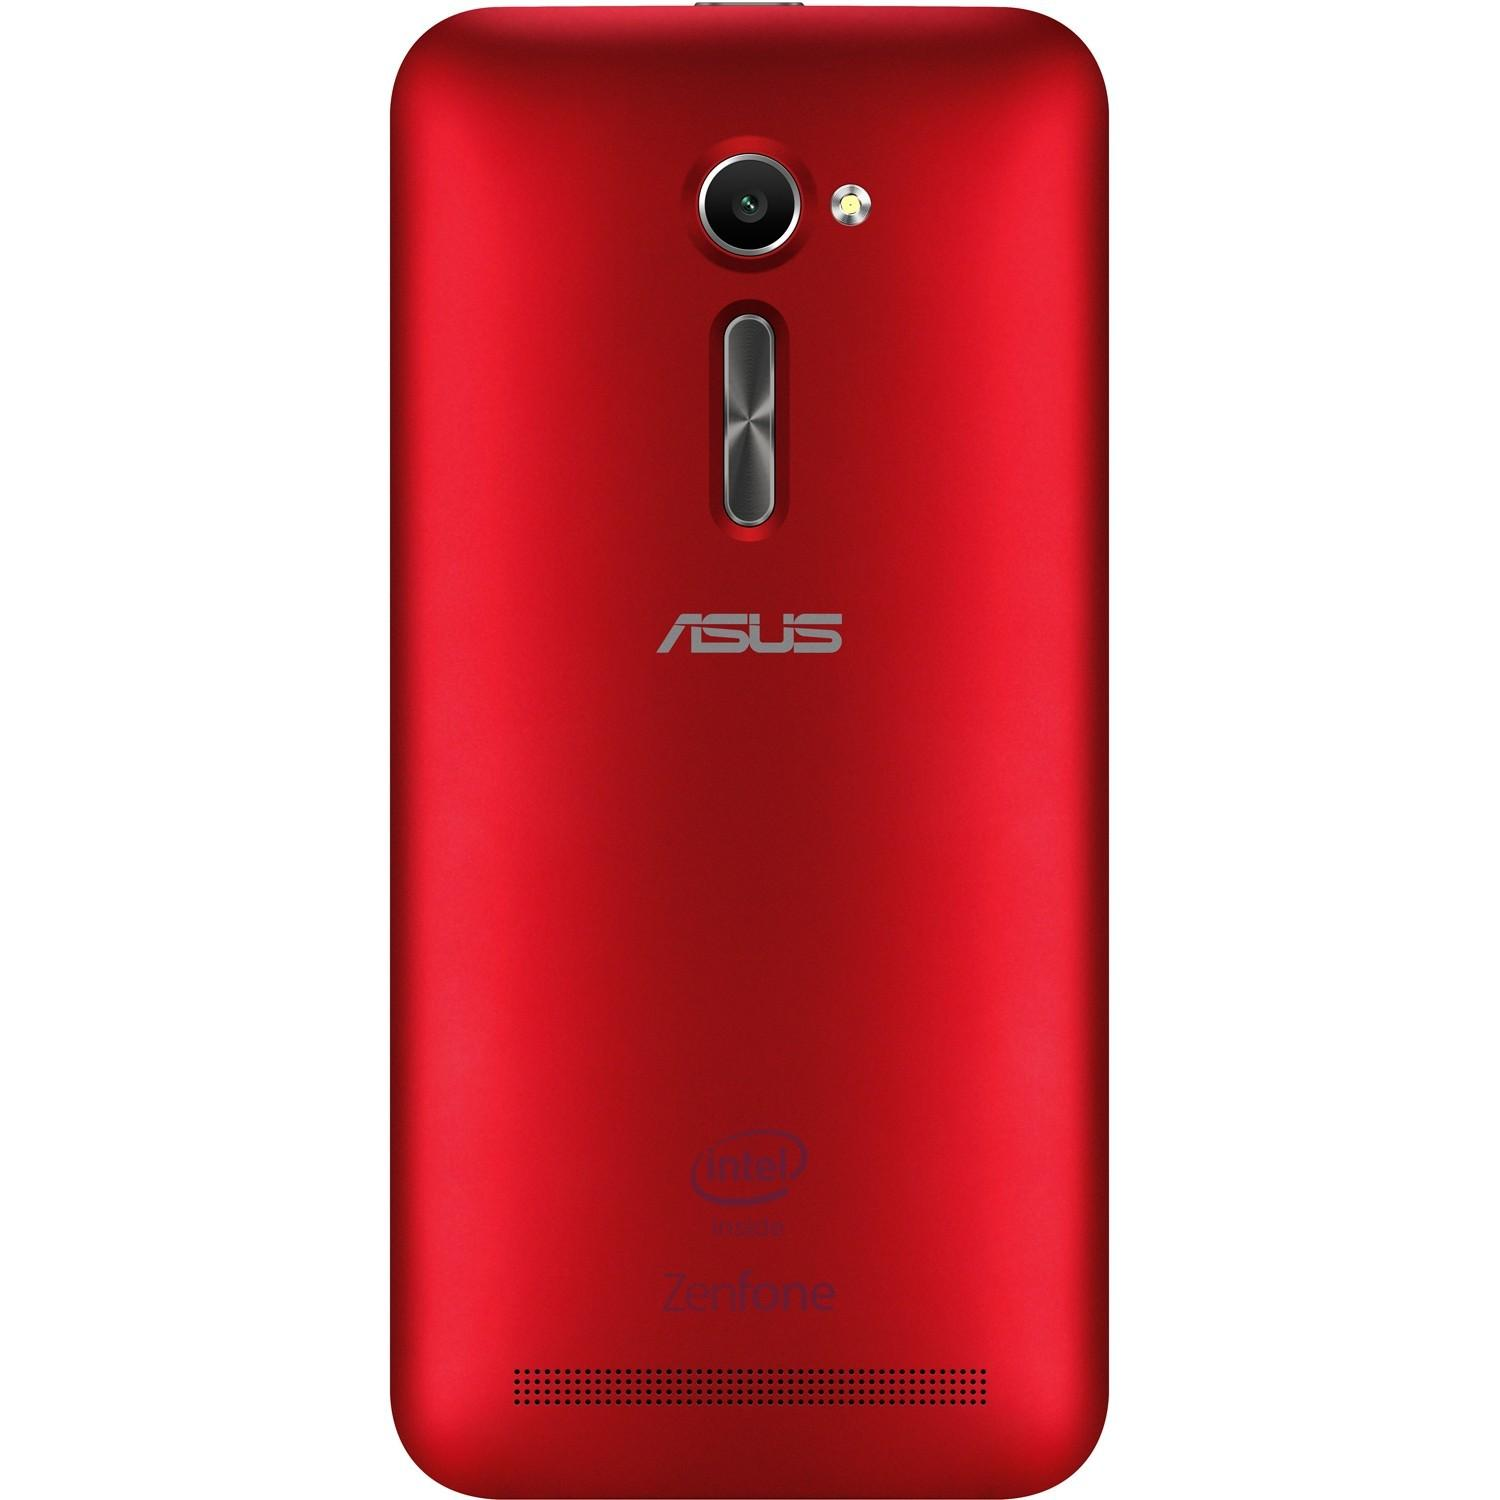 Asus Zenfone 2 red 16GB